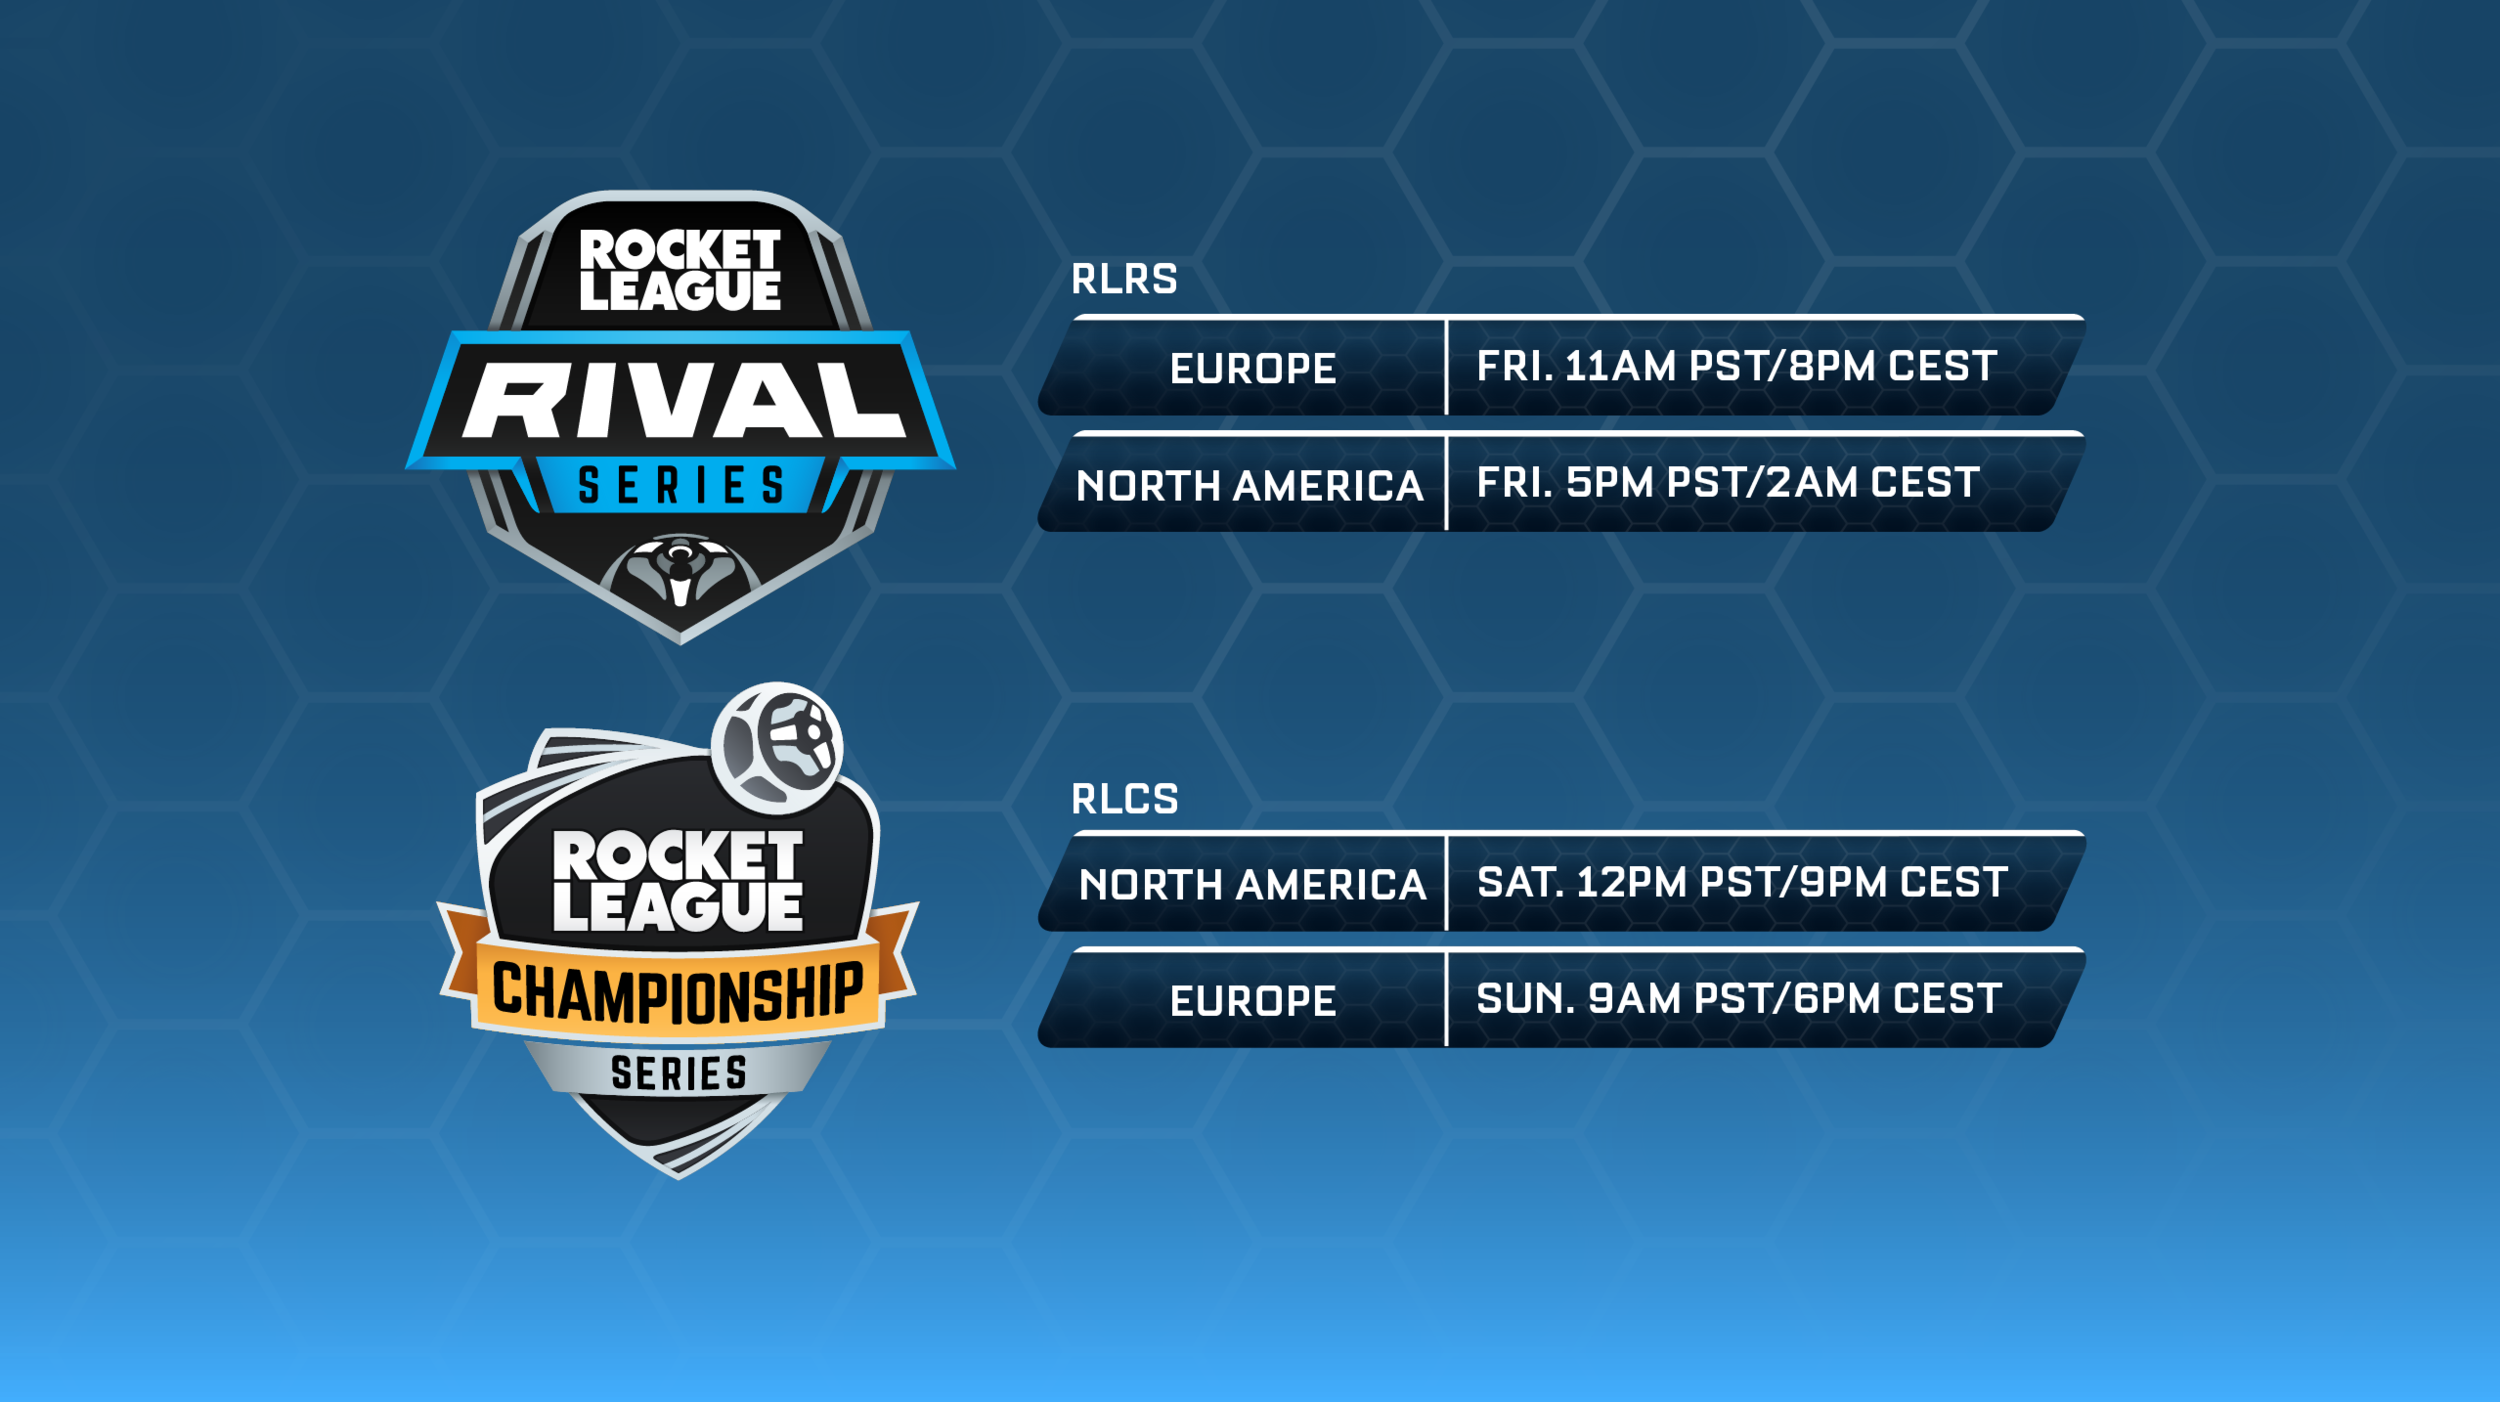 Schedule for RLRS/RLCS broadcasts